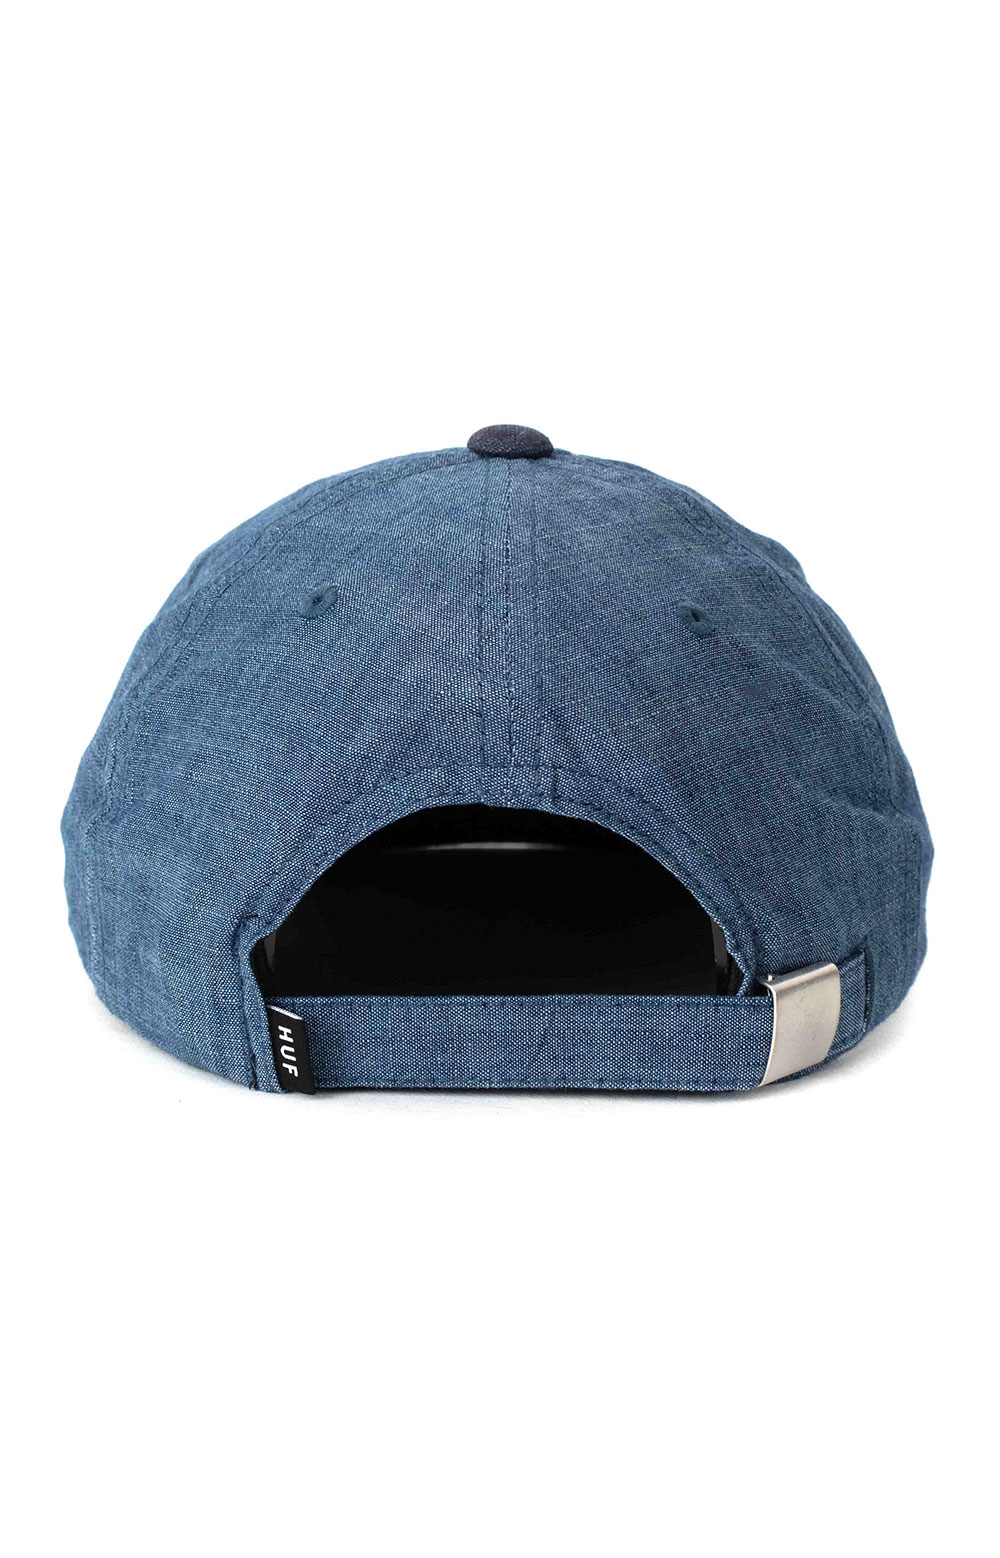 Global Warming 6 Panel Hat - Blue Chambray 3